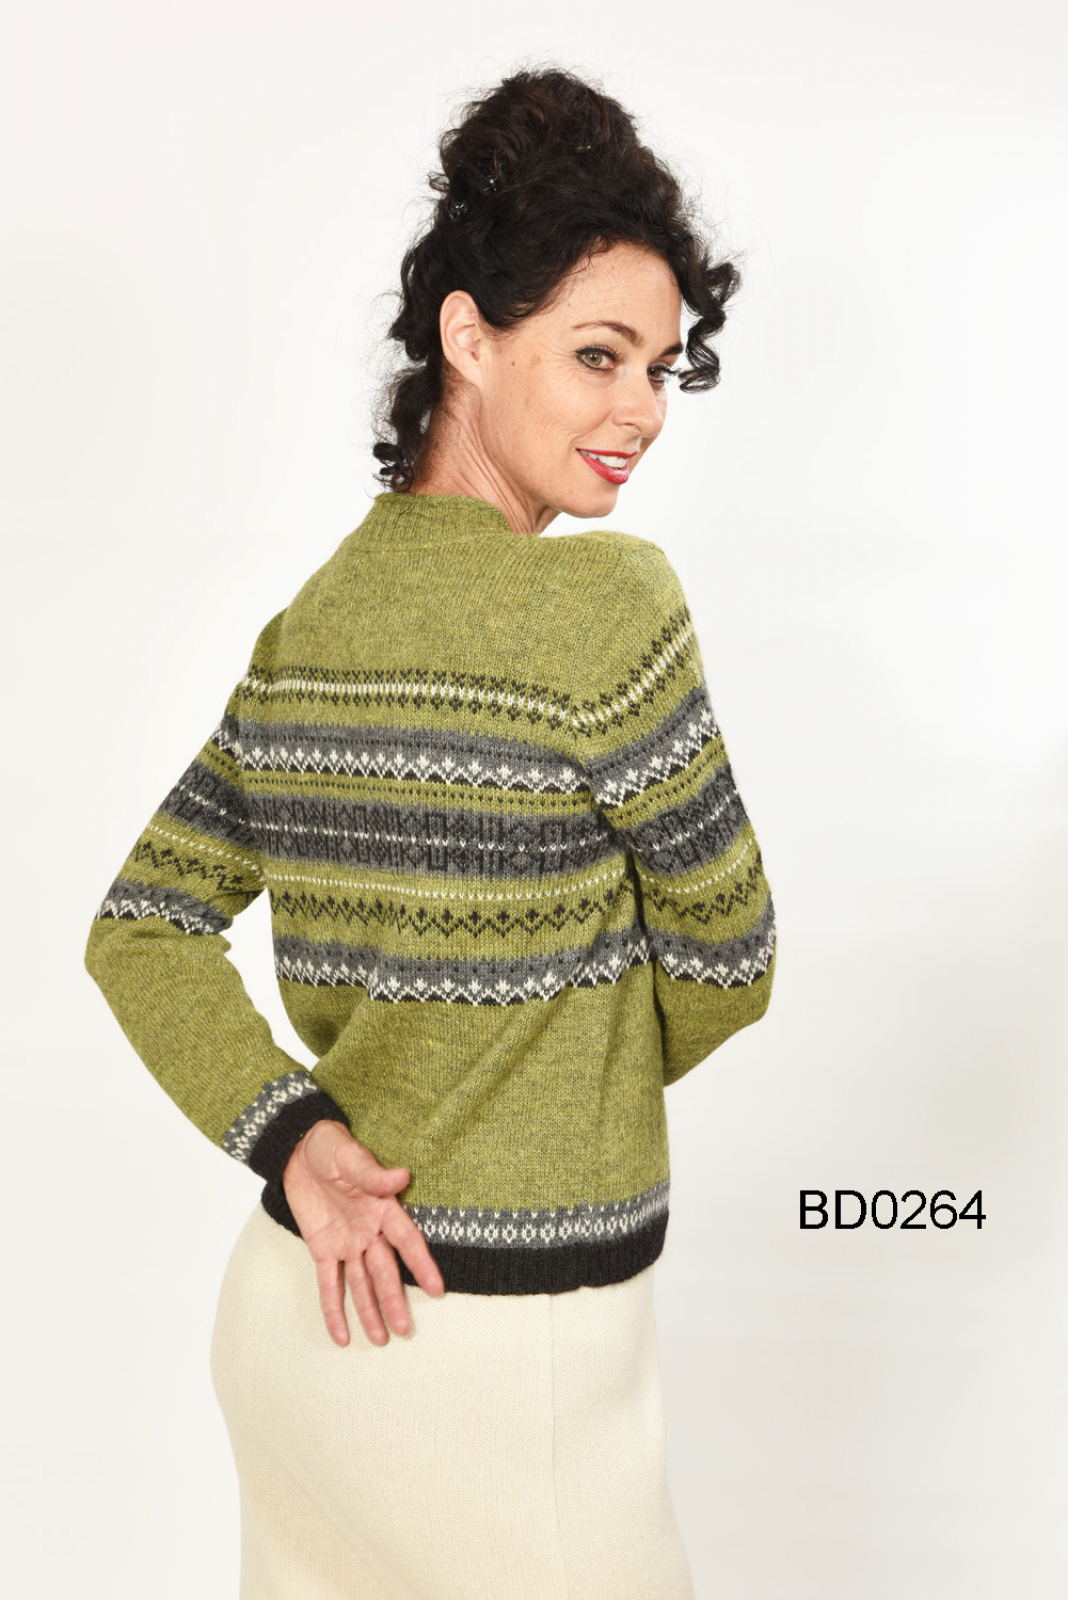 Women's Alpaca Sweater in Norwegian Look